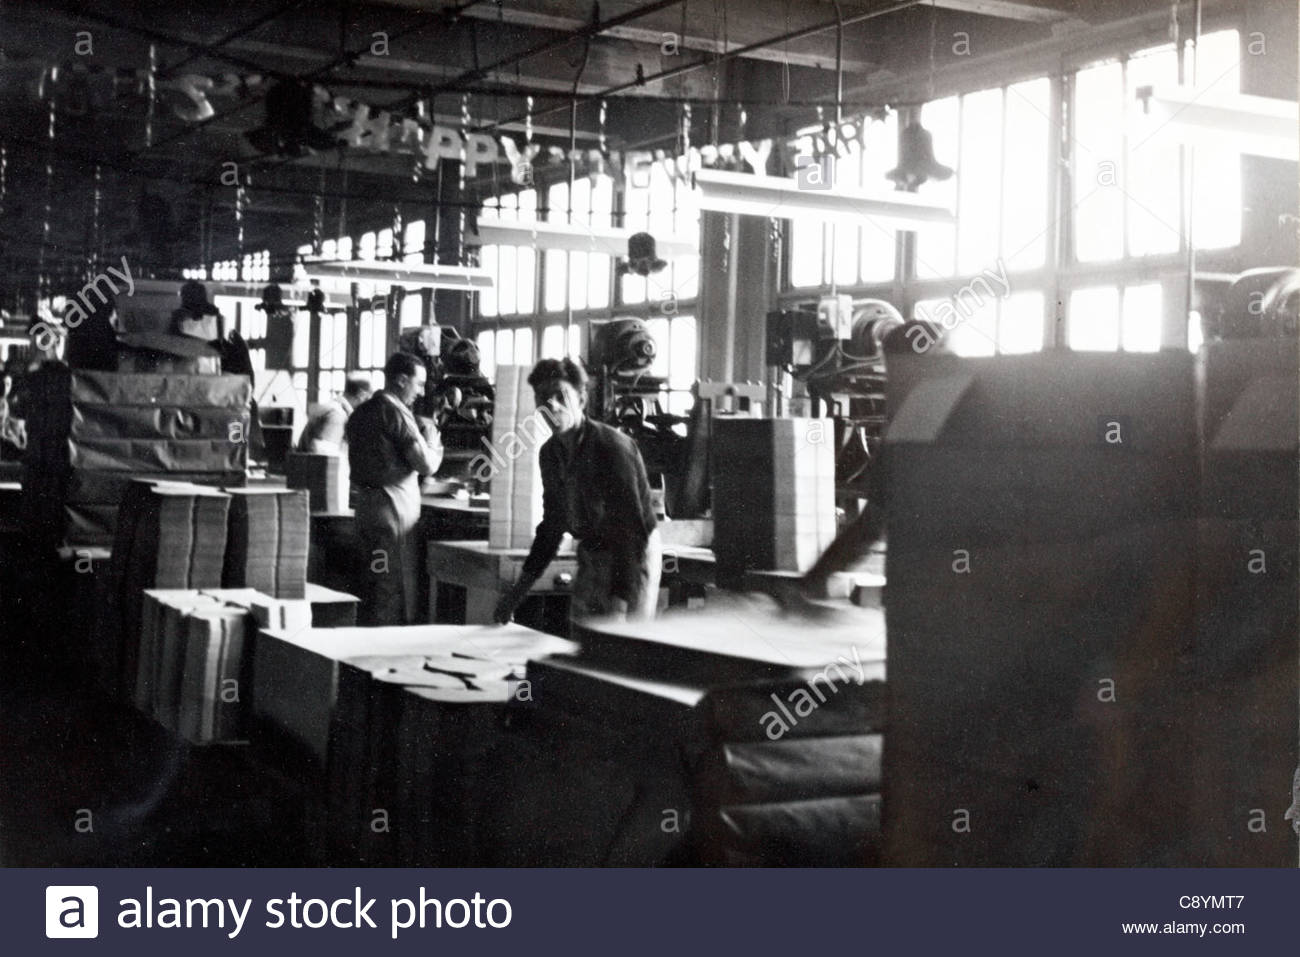 1950s Assembly Line Stock Photos Amp 1950s Assembly Line